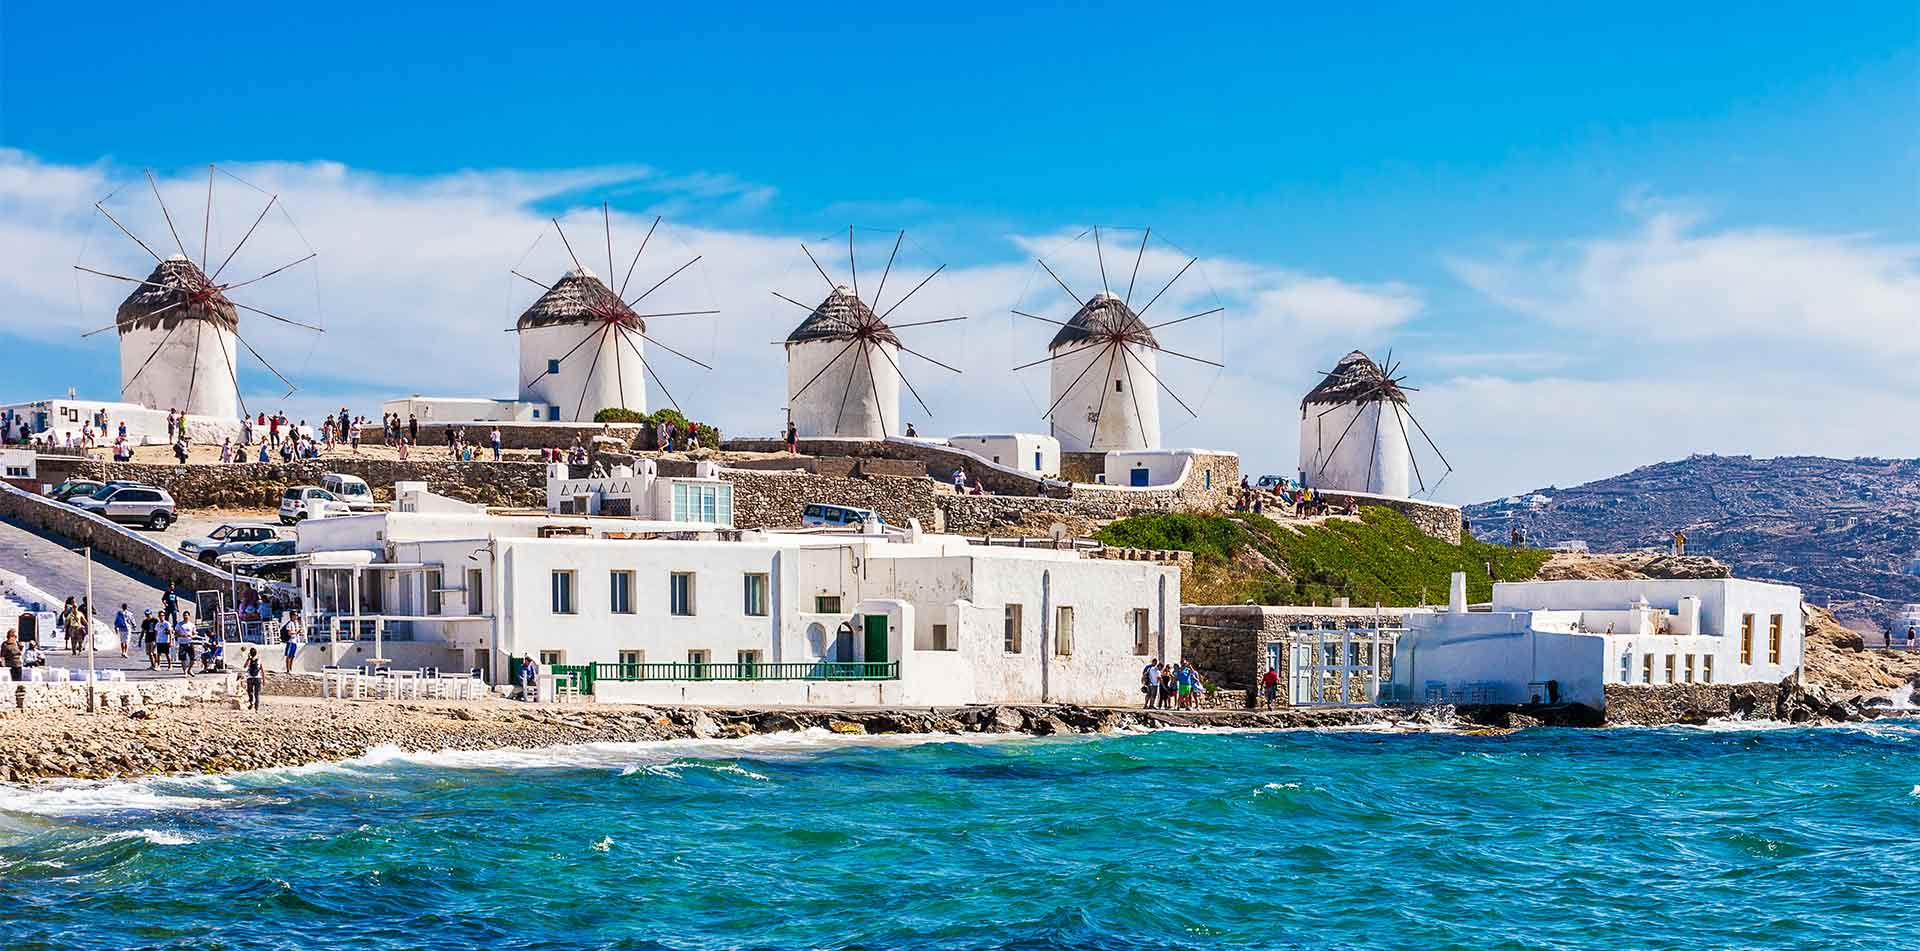 Europe Greece Mykonos Island iconic windmills along coastline with blue water - luxury vacation destinations